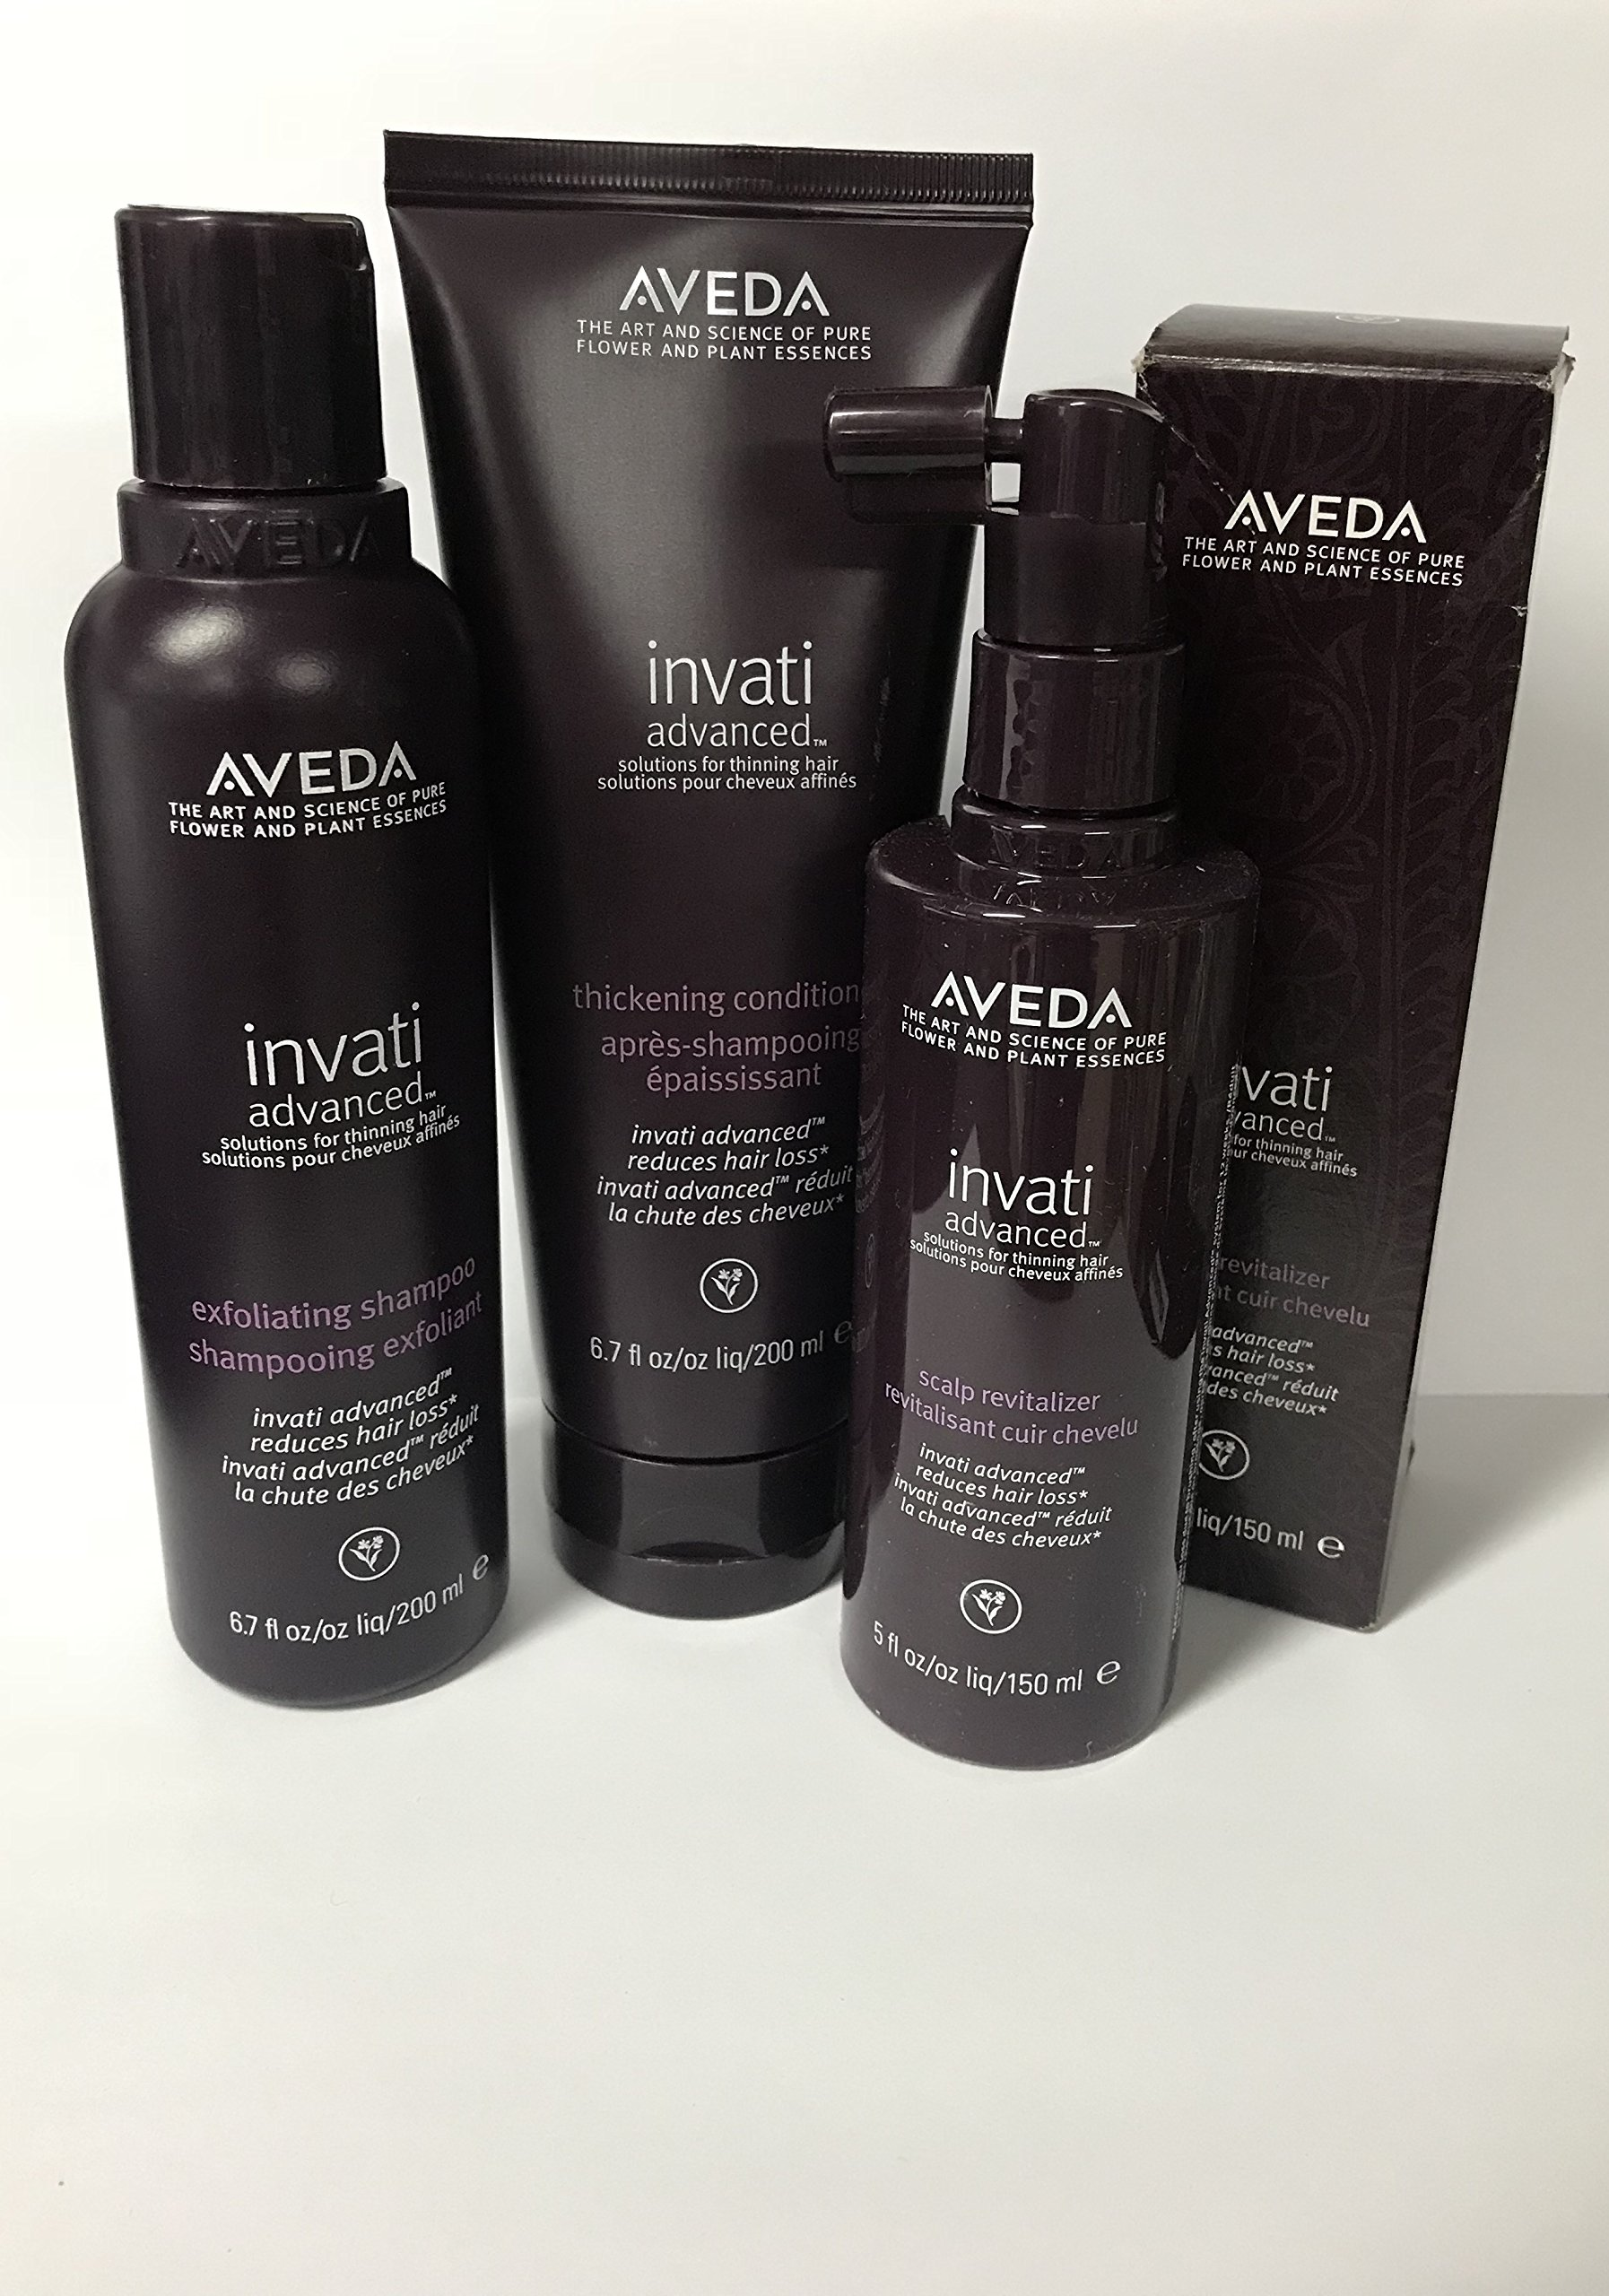 Aveda INVATI Advanced Shampoo 6.7 oz Conditioner 6.7 oz Scalp Revitalizer 5 oz set